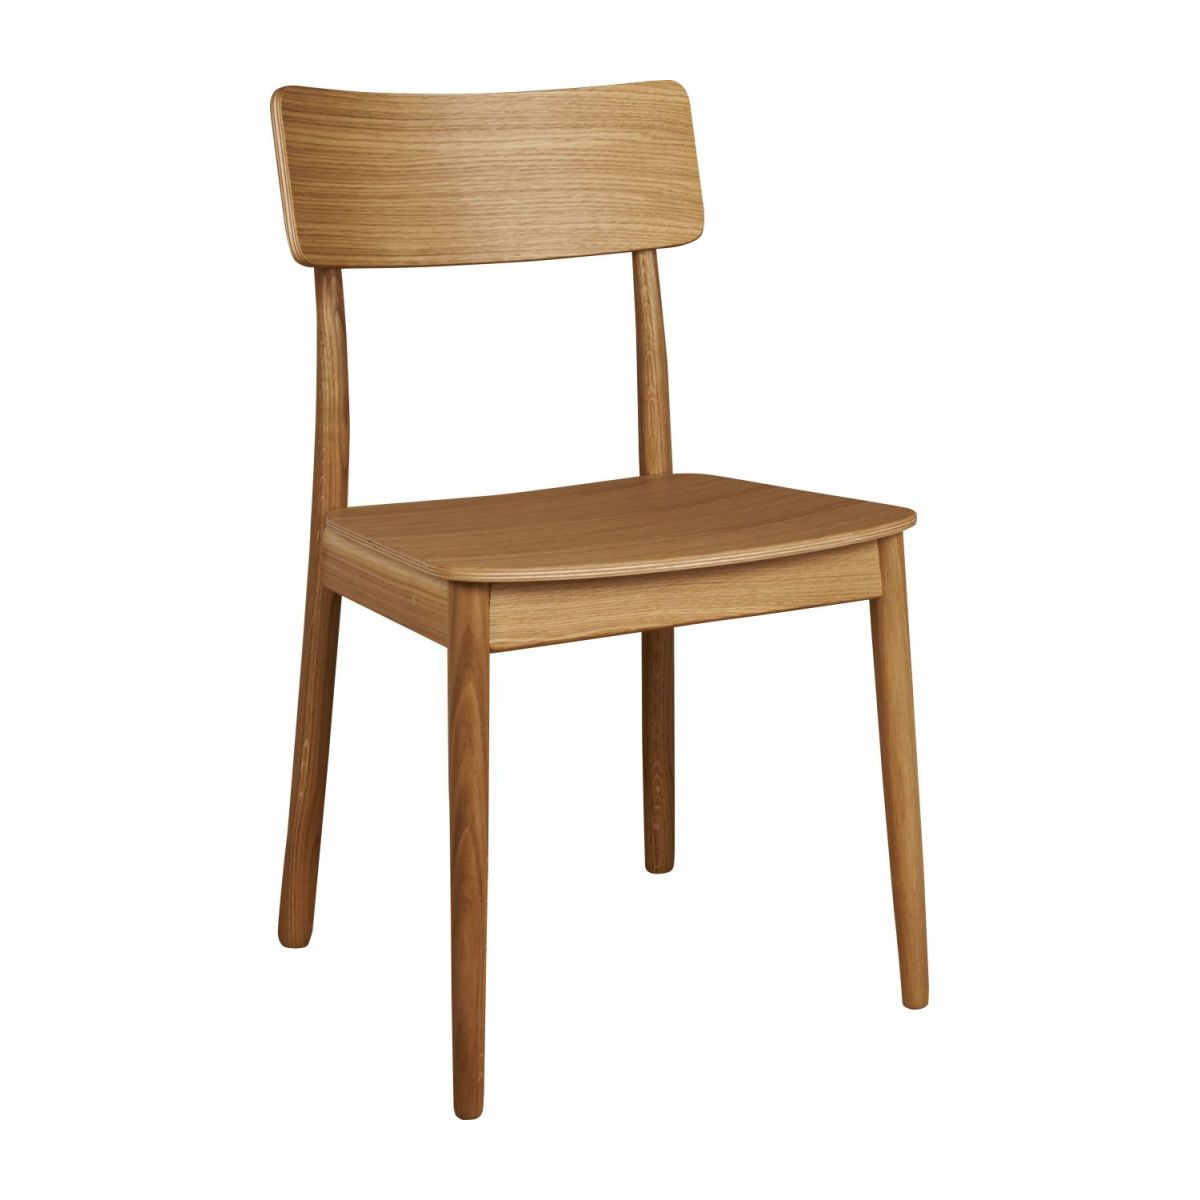 Oak chair n°1